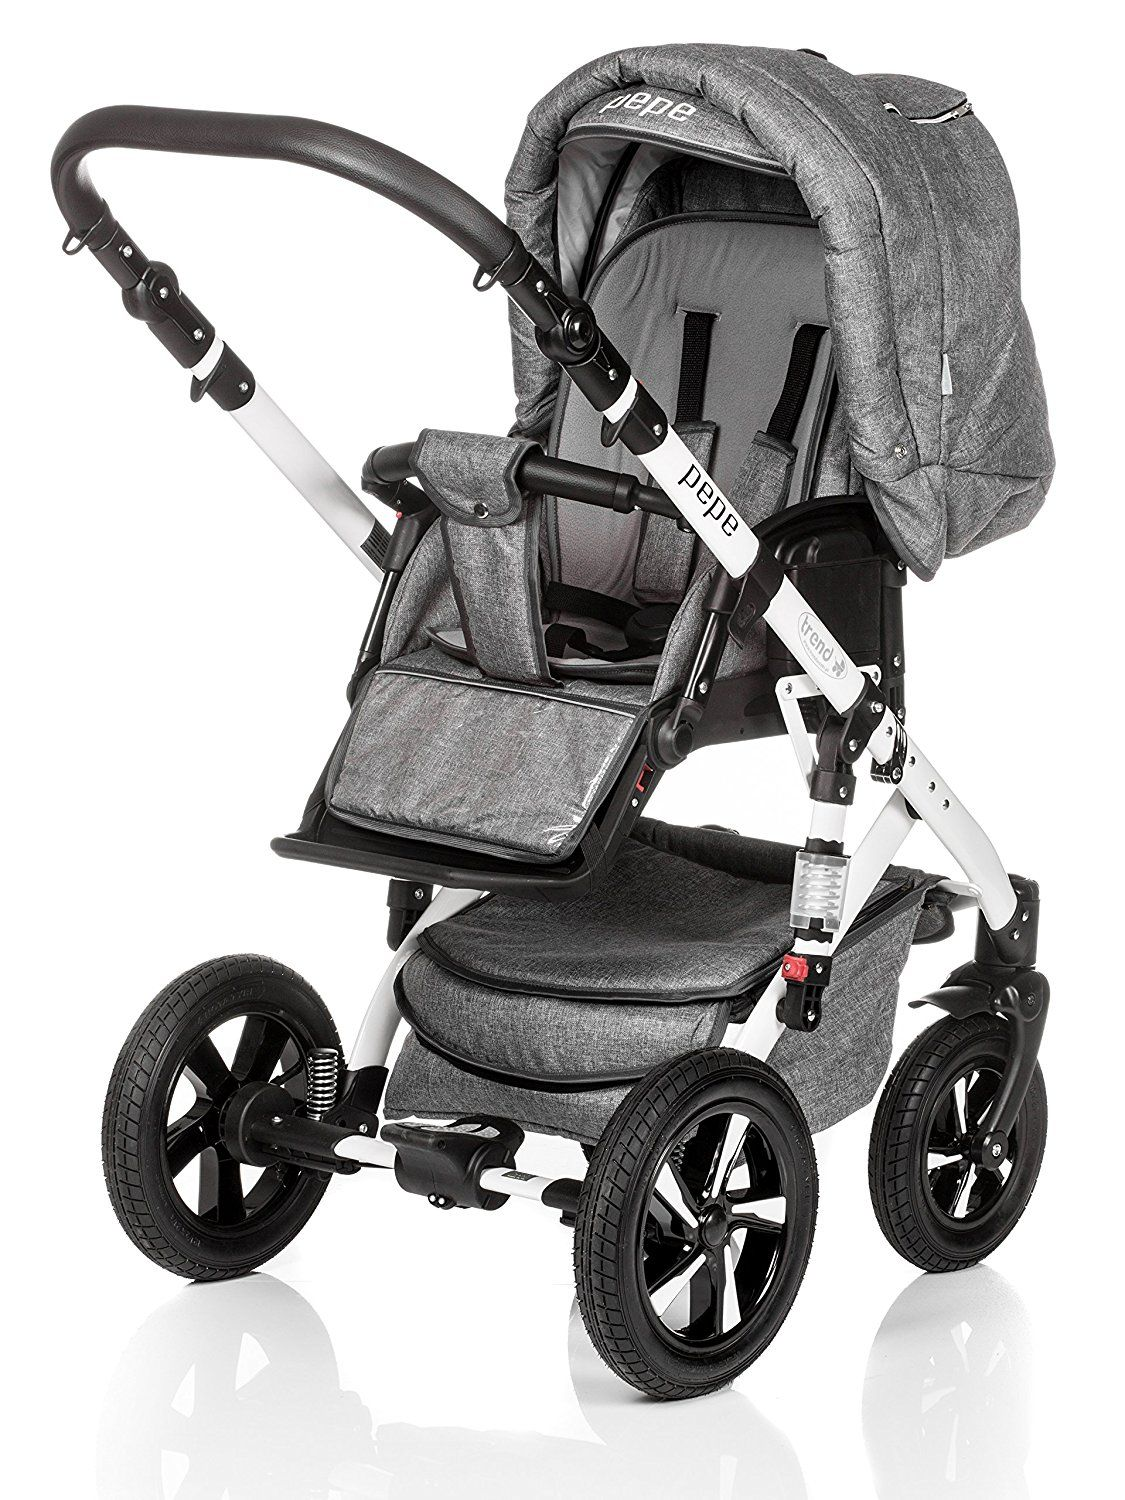 Baby Trend Sit N Stand Double Review Jogging stroller